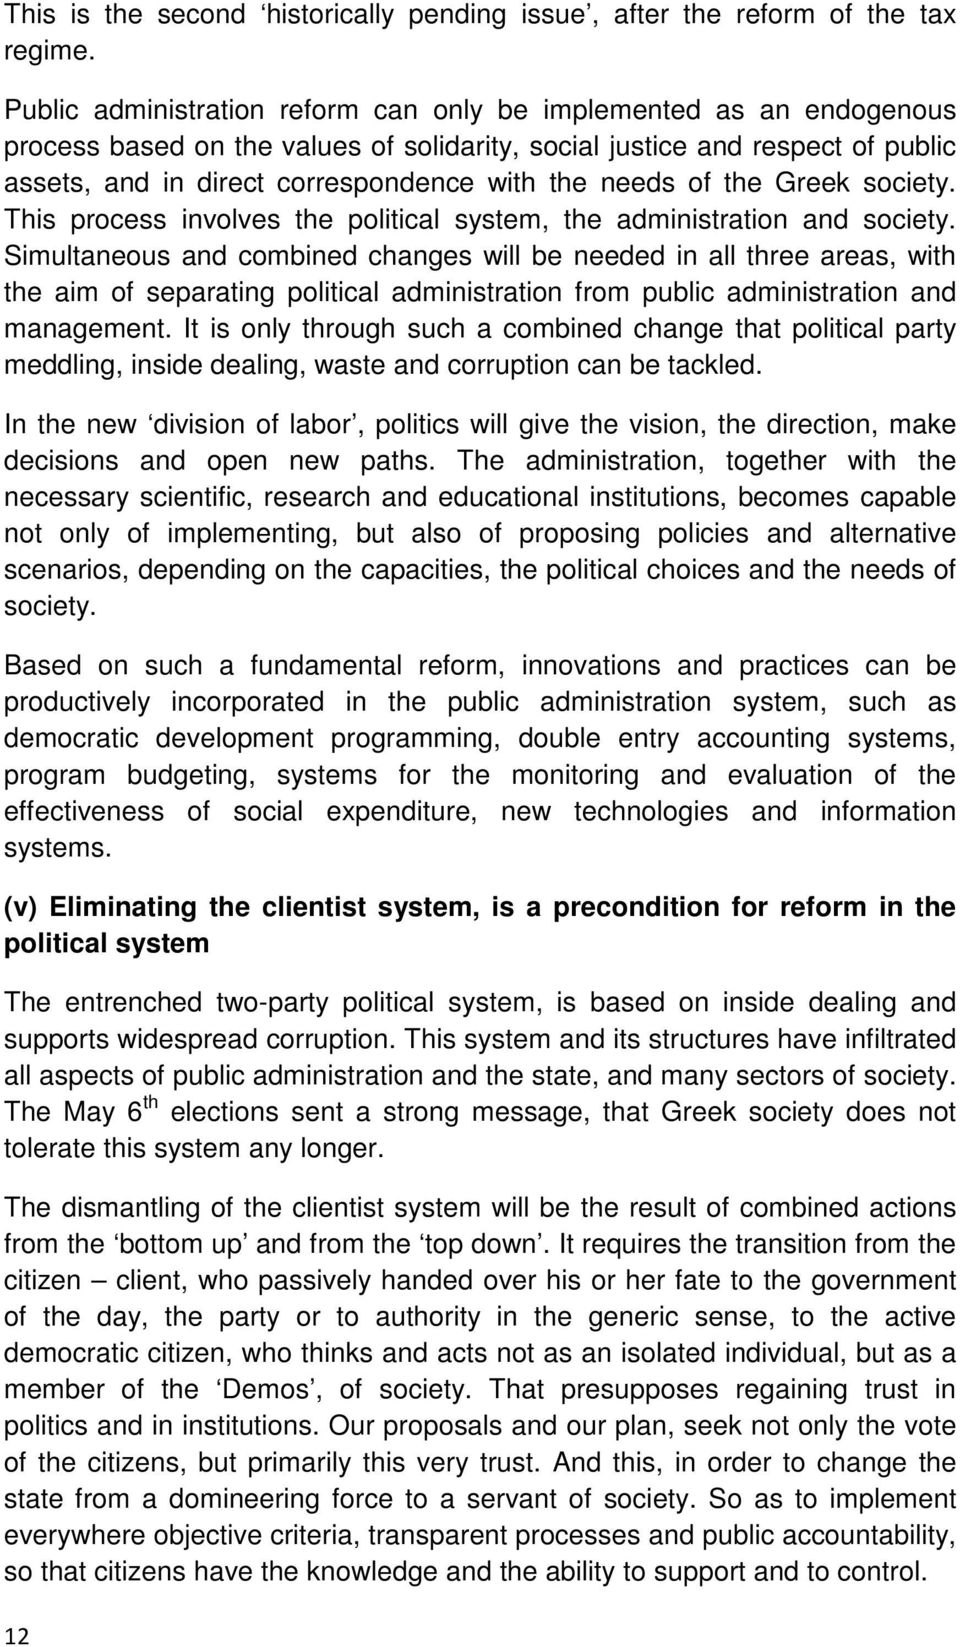 needs of the Greek society. This process involves the political system, the administration and society.